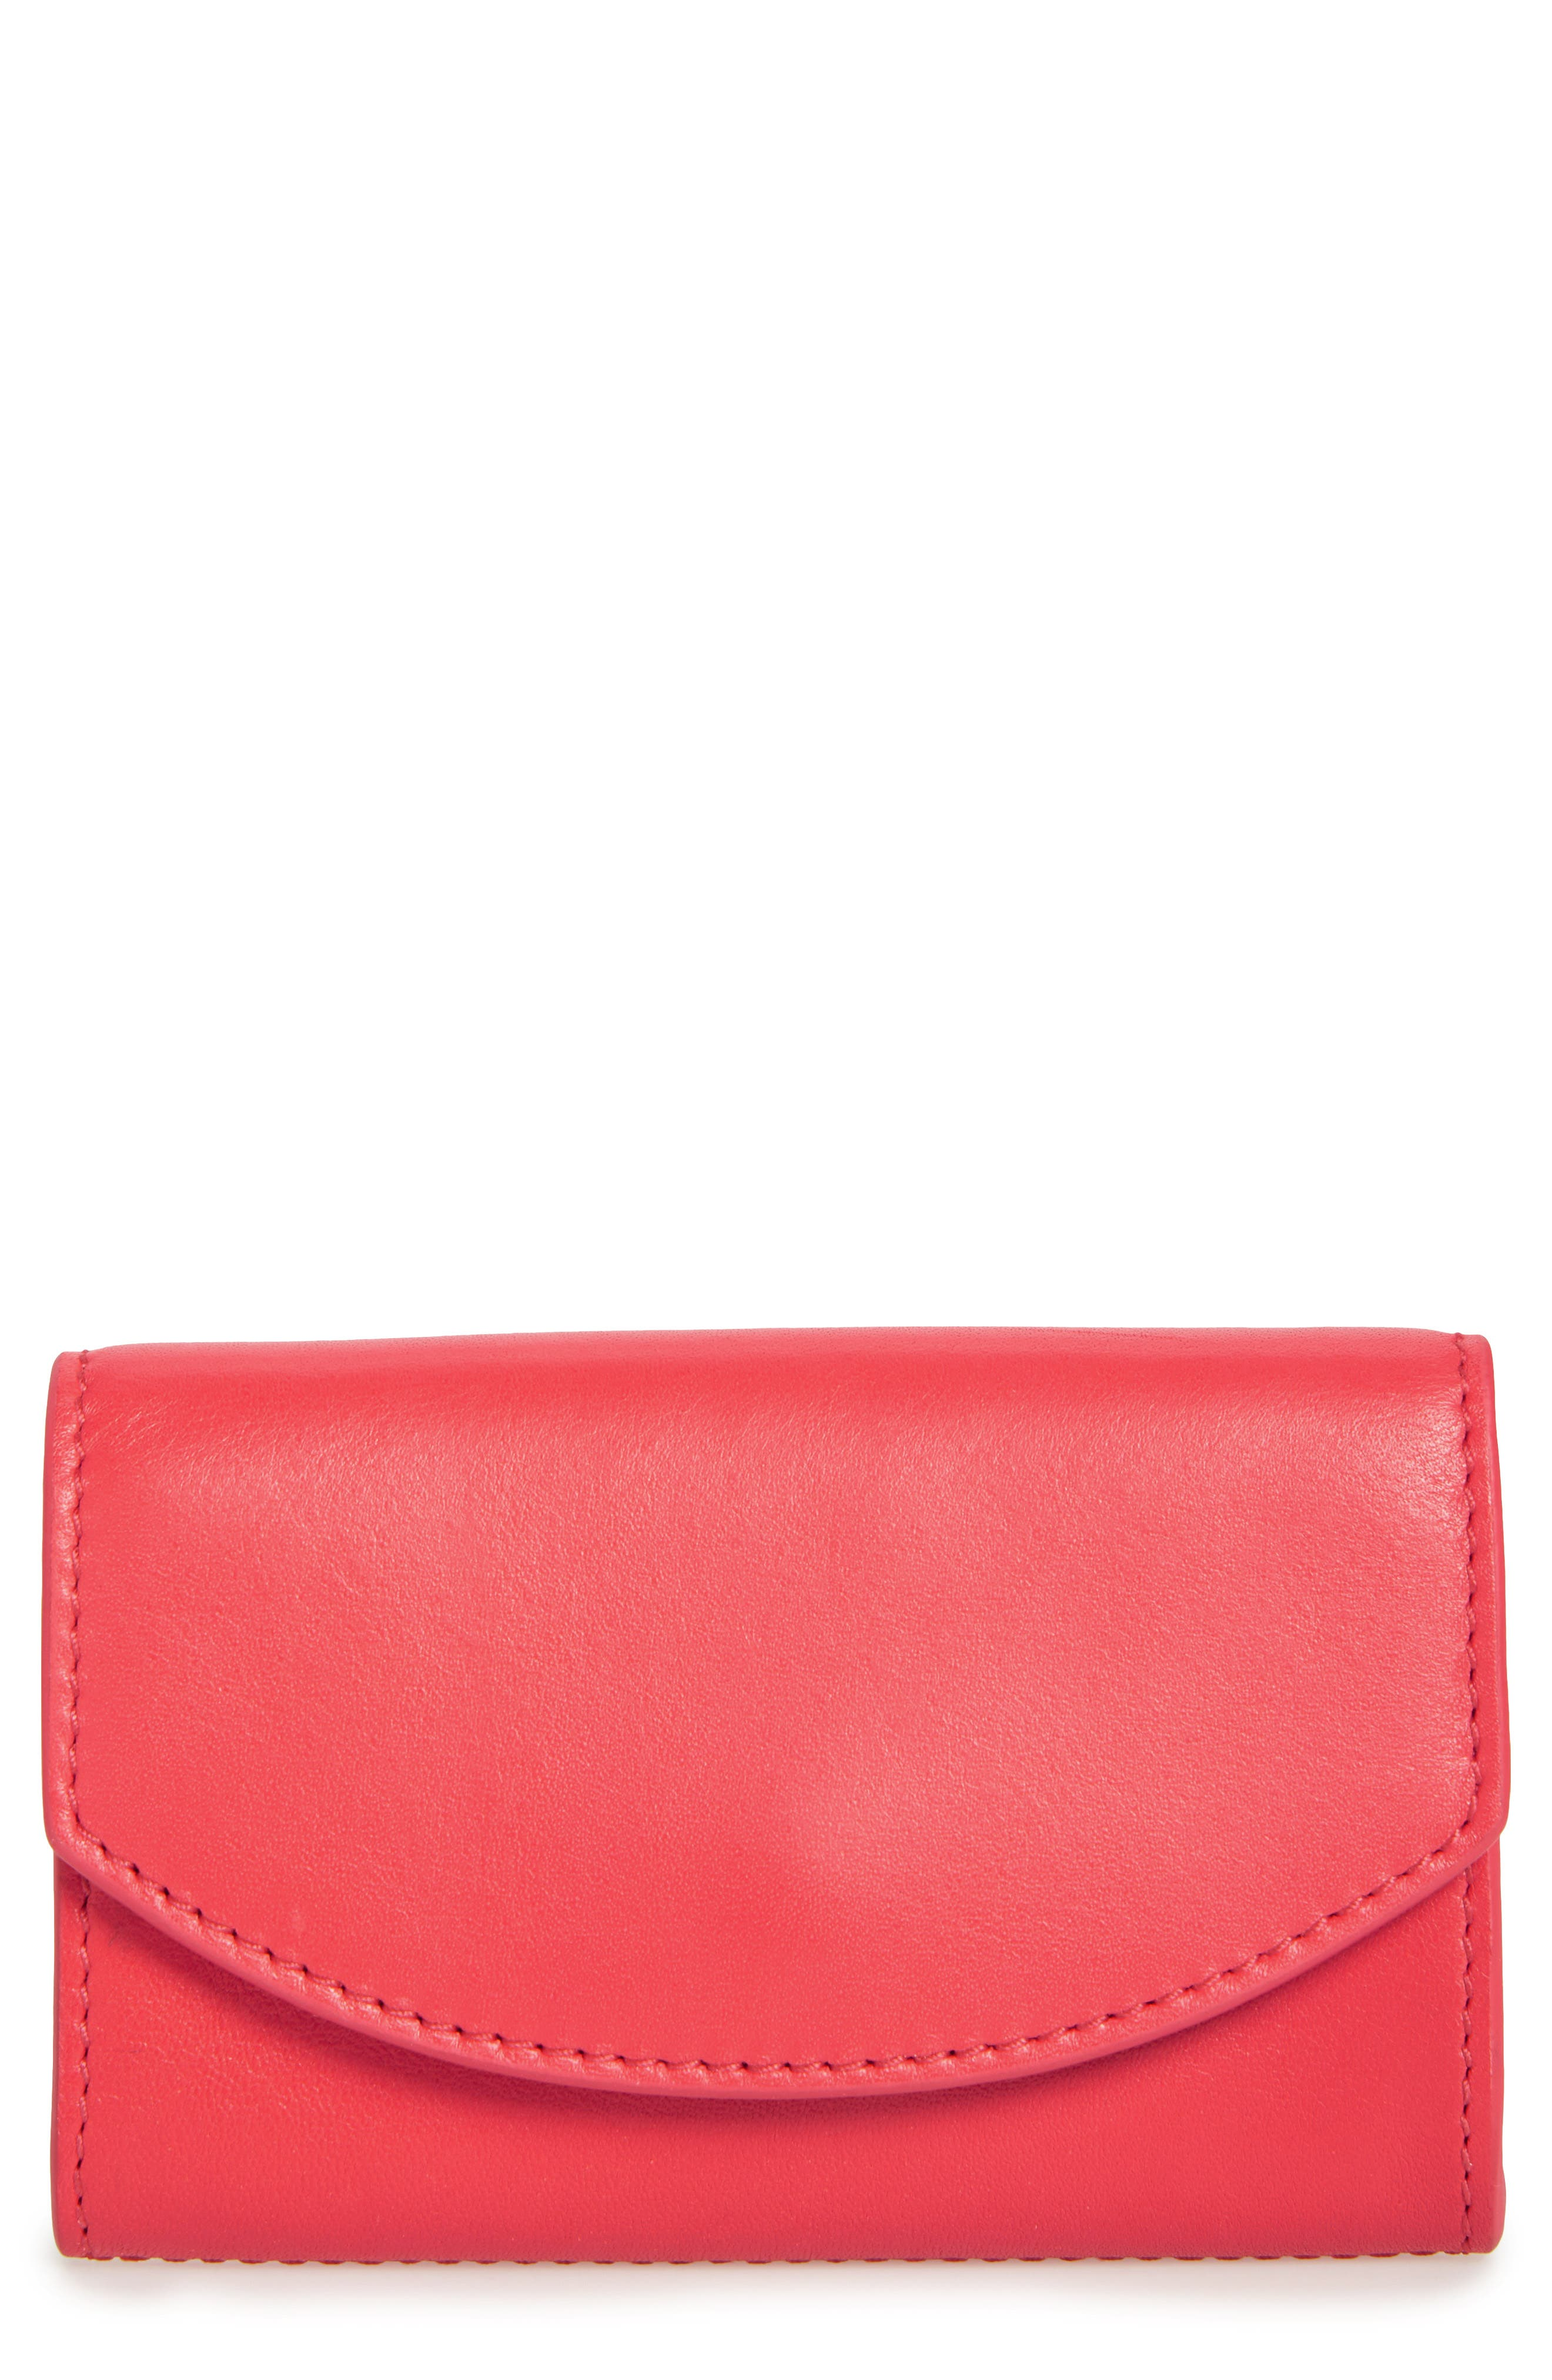 Leather Card Case,                         Main,                         color, Lotus